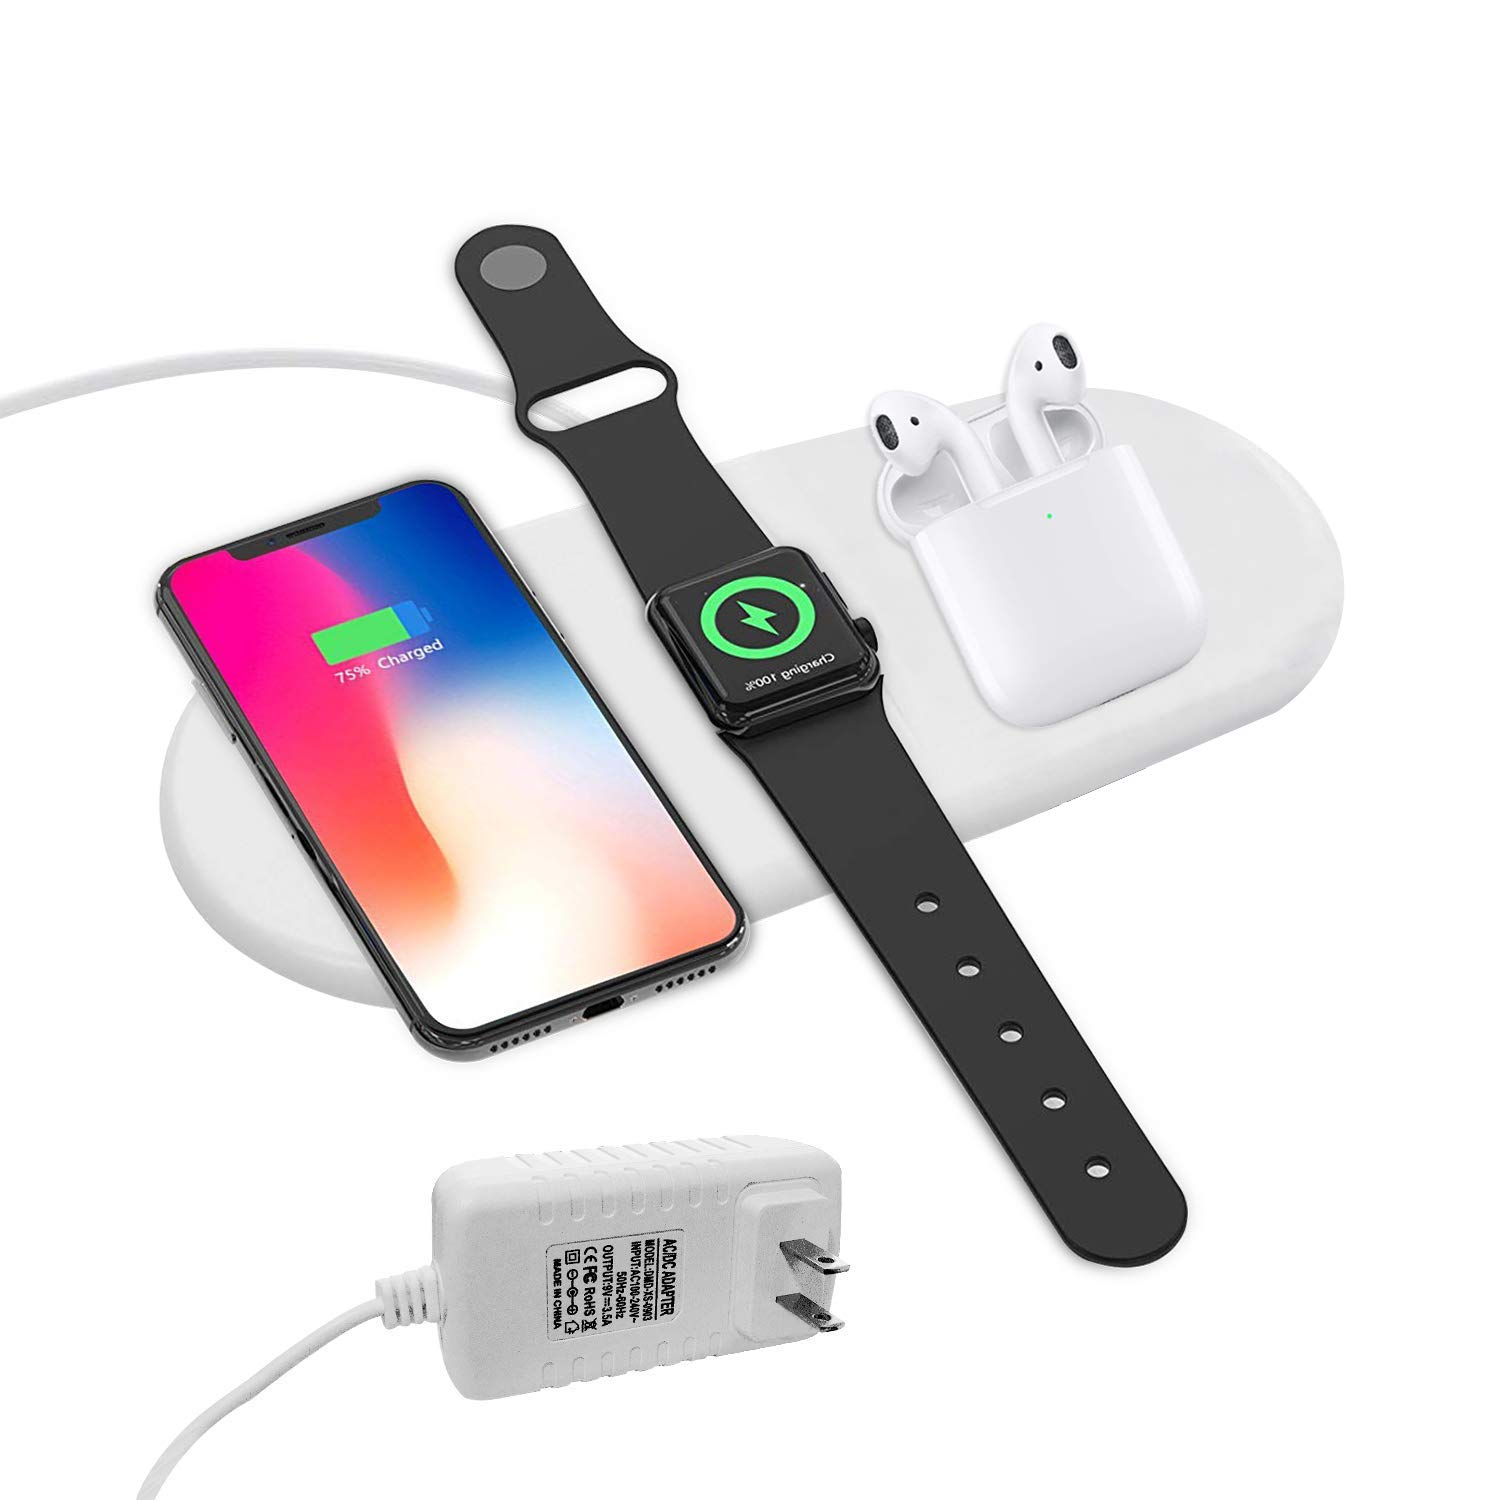 Wireless Charger Pad for New AirPods [ 3 in 1], YLEX Charging Station for Apple iWatch 4/3/2, Qi Charger for iPhone Xs Max/XR,Fast Charging for Samsung Galaxy S10/S10+ and More 5962930433 by YLEX